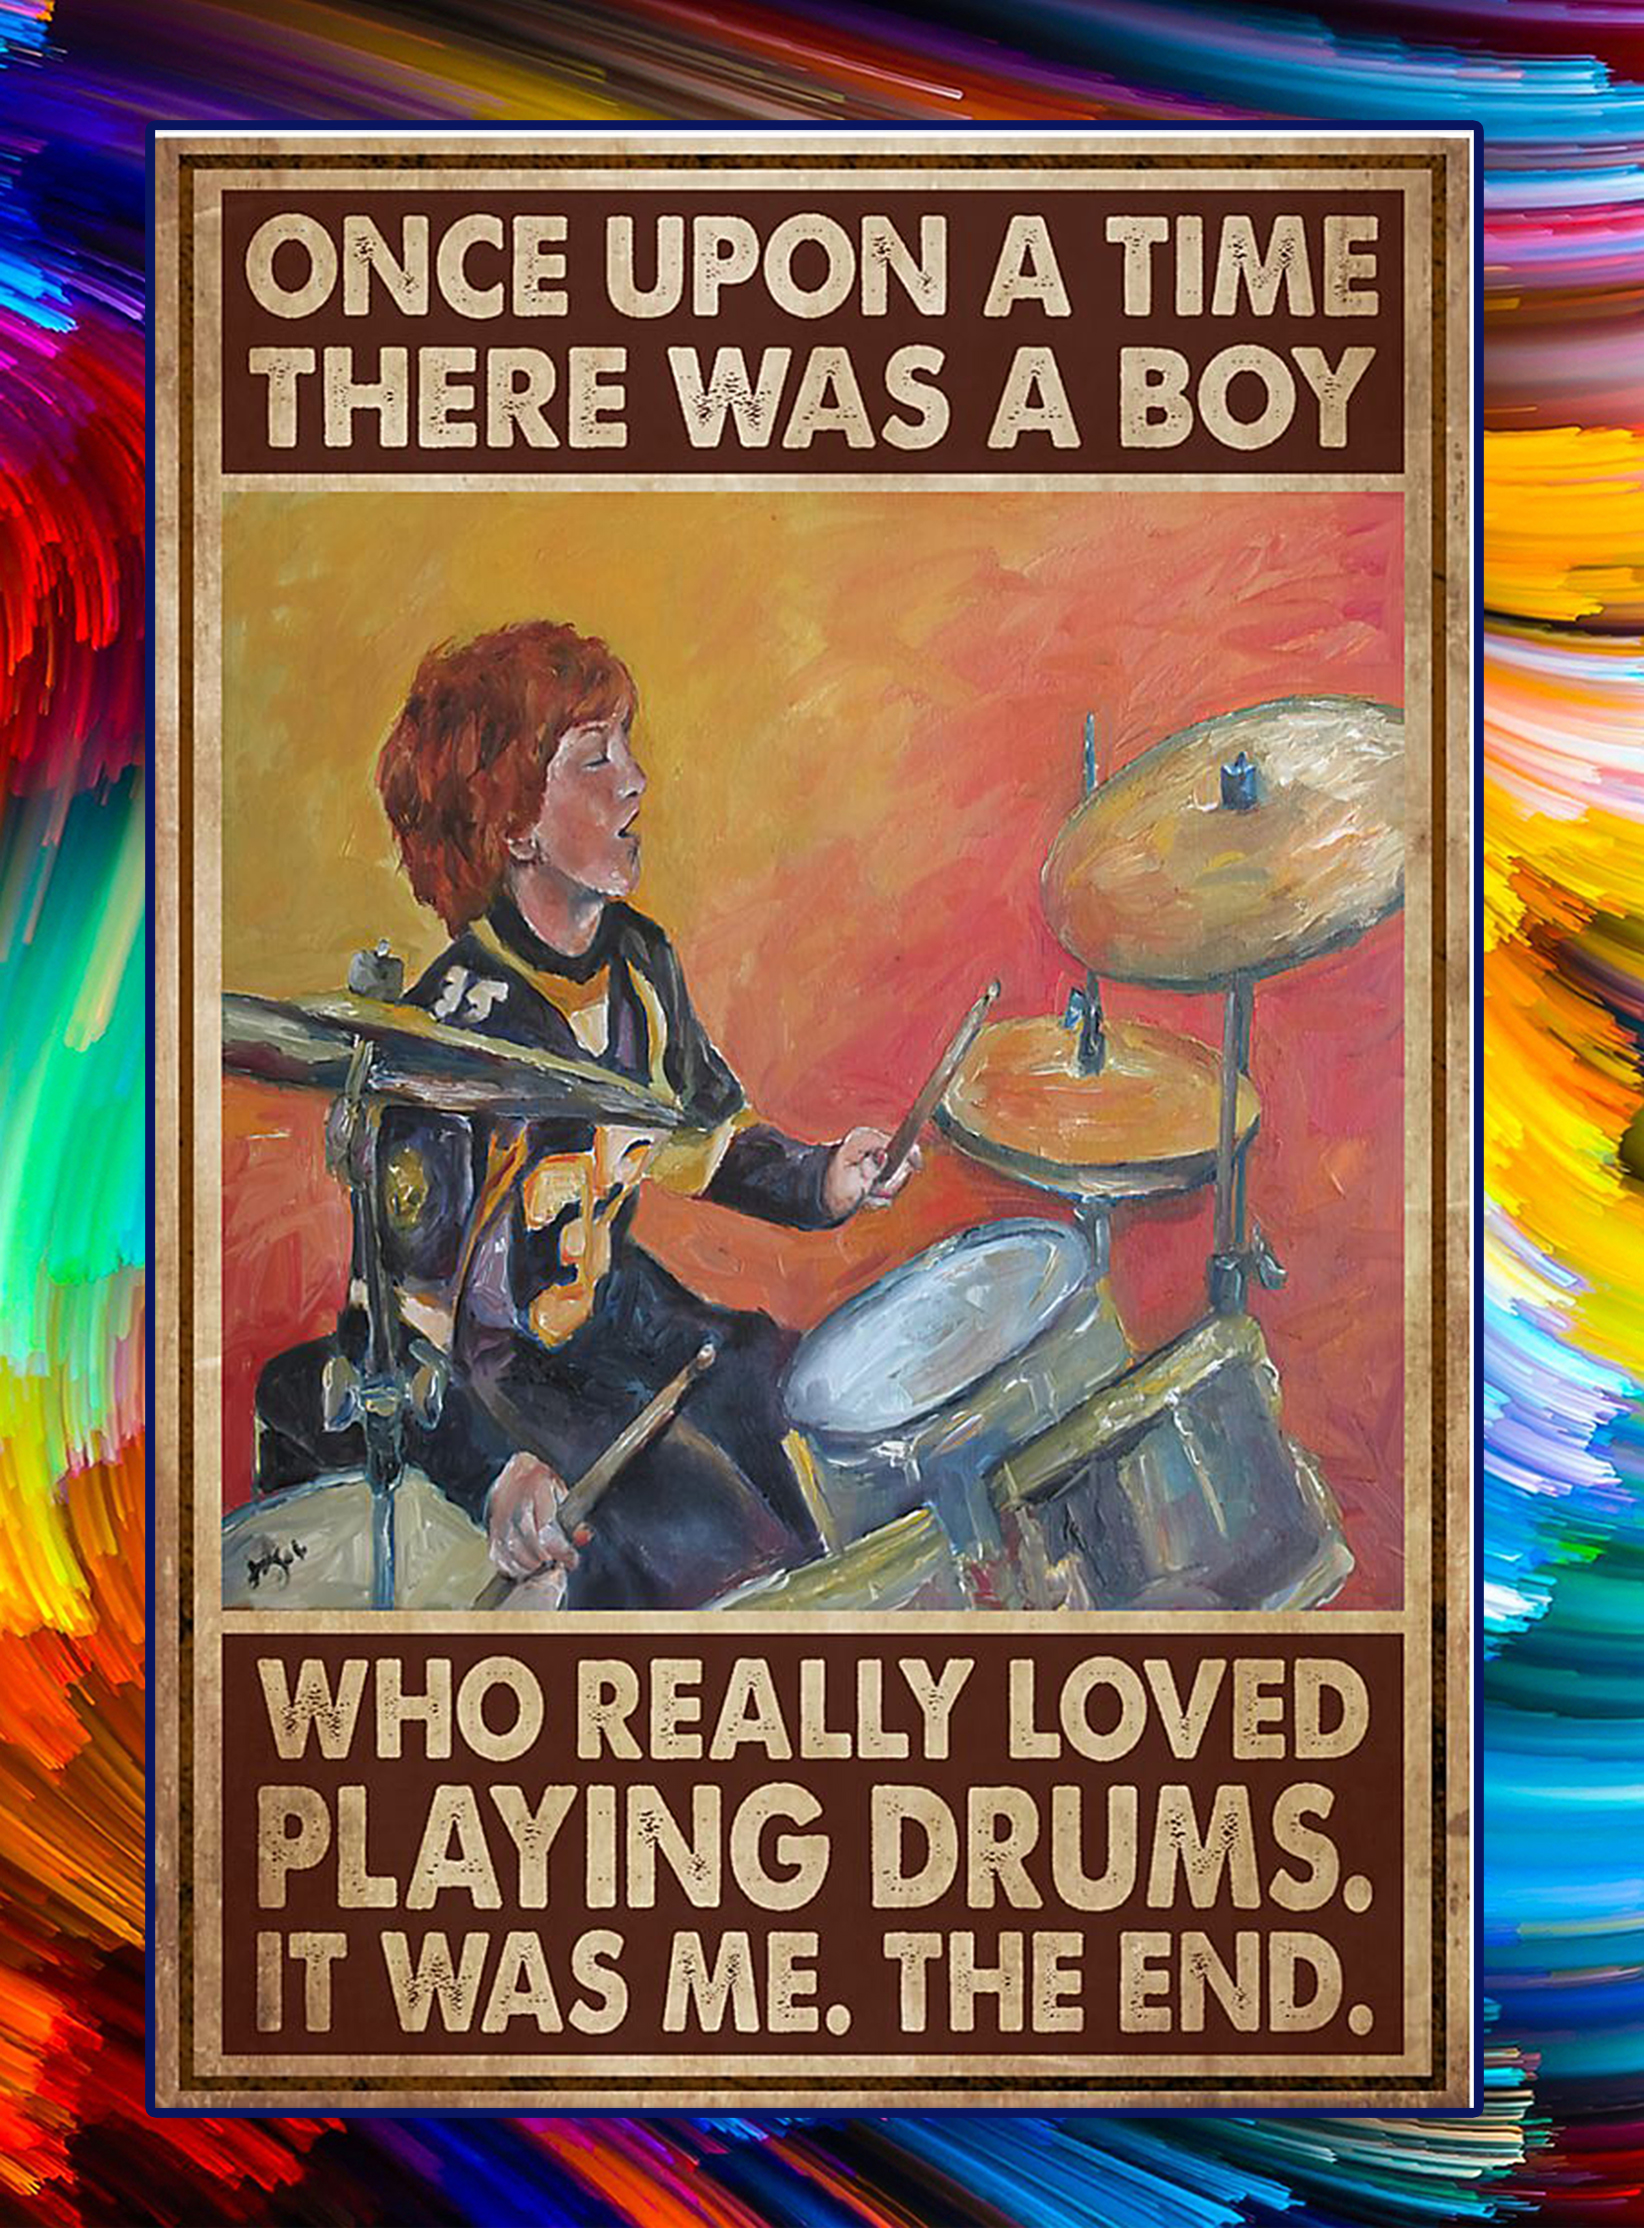 Once upon a time there was a boy who really loved playing drums poster - A1